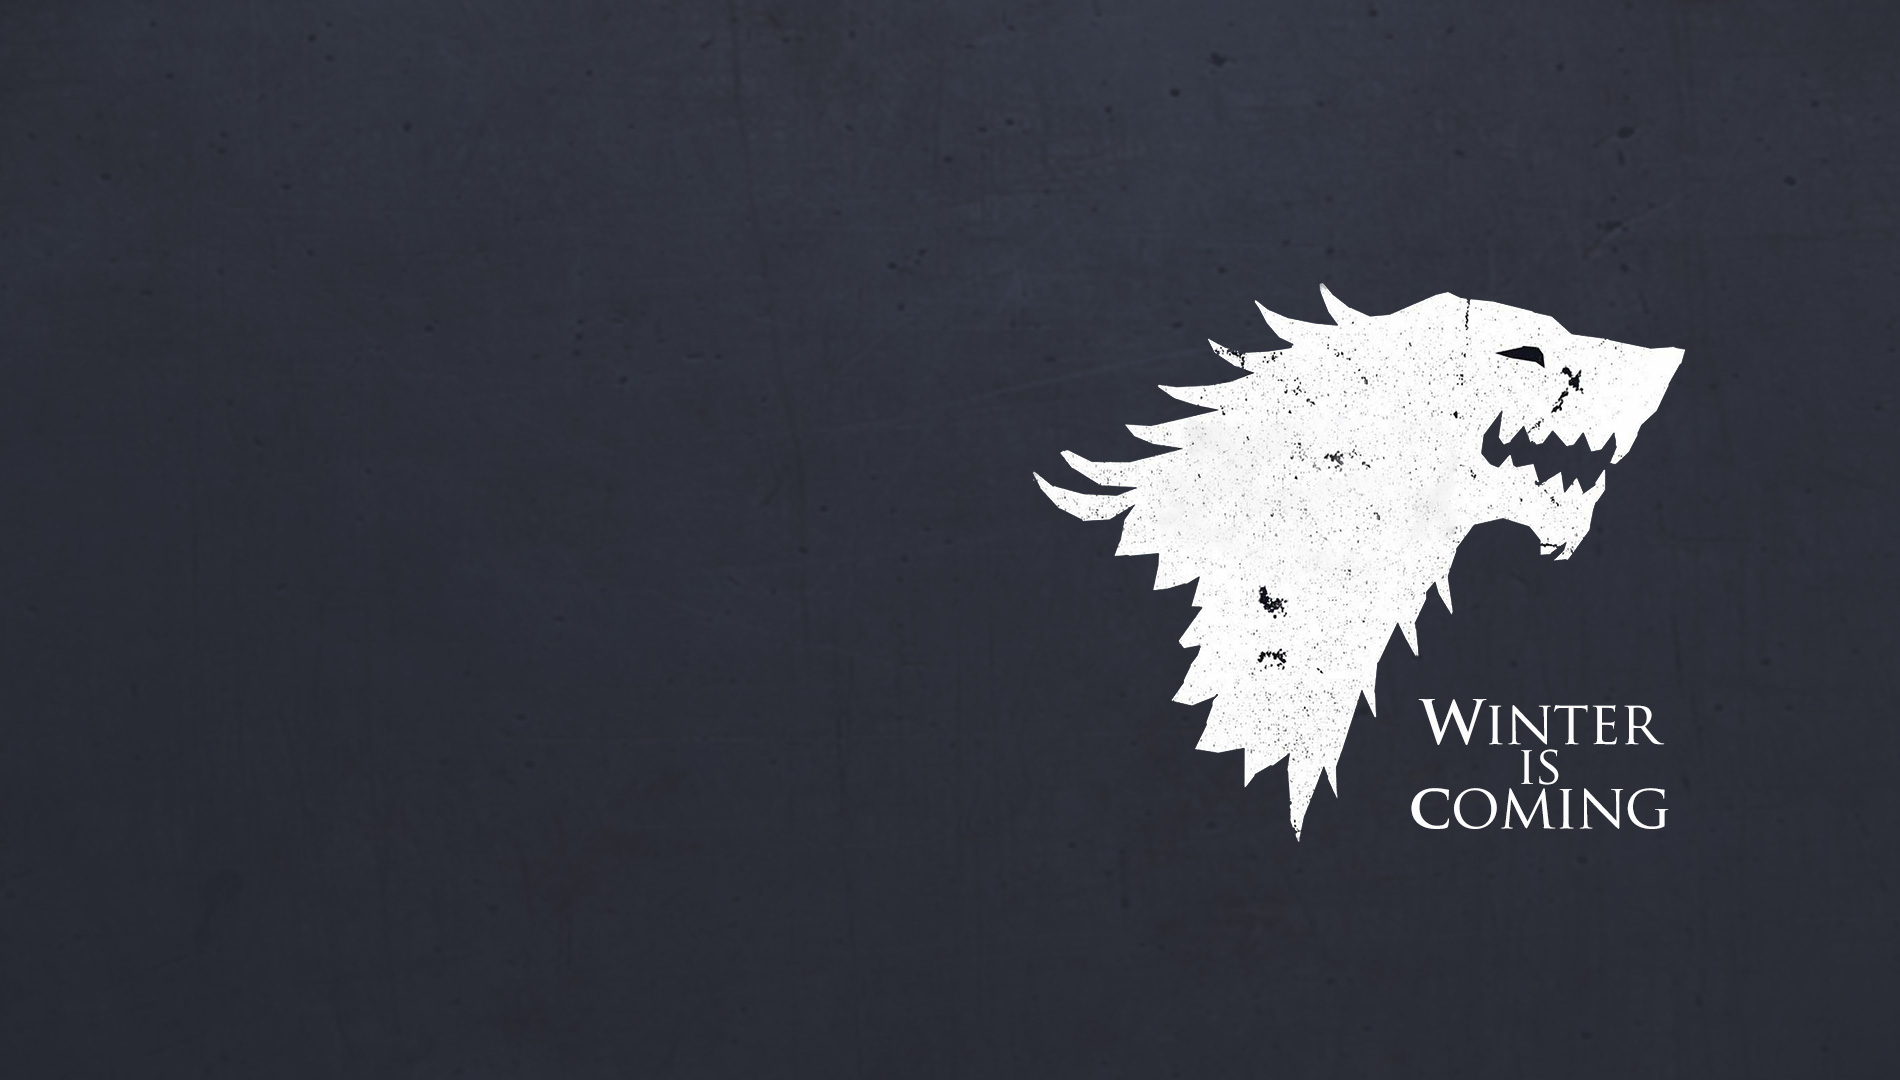 winter is coming wallpaper hd 1900x1080